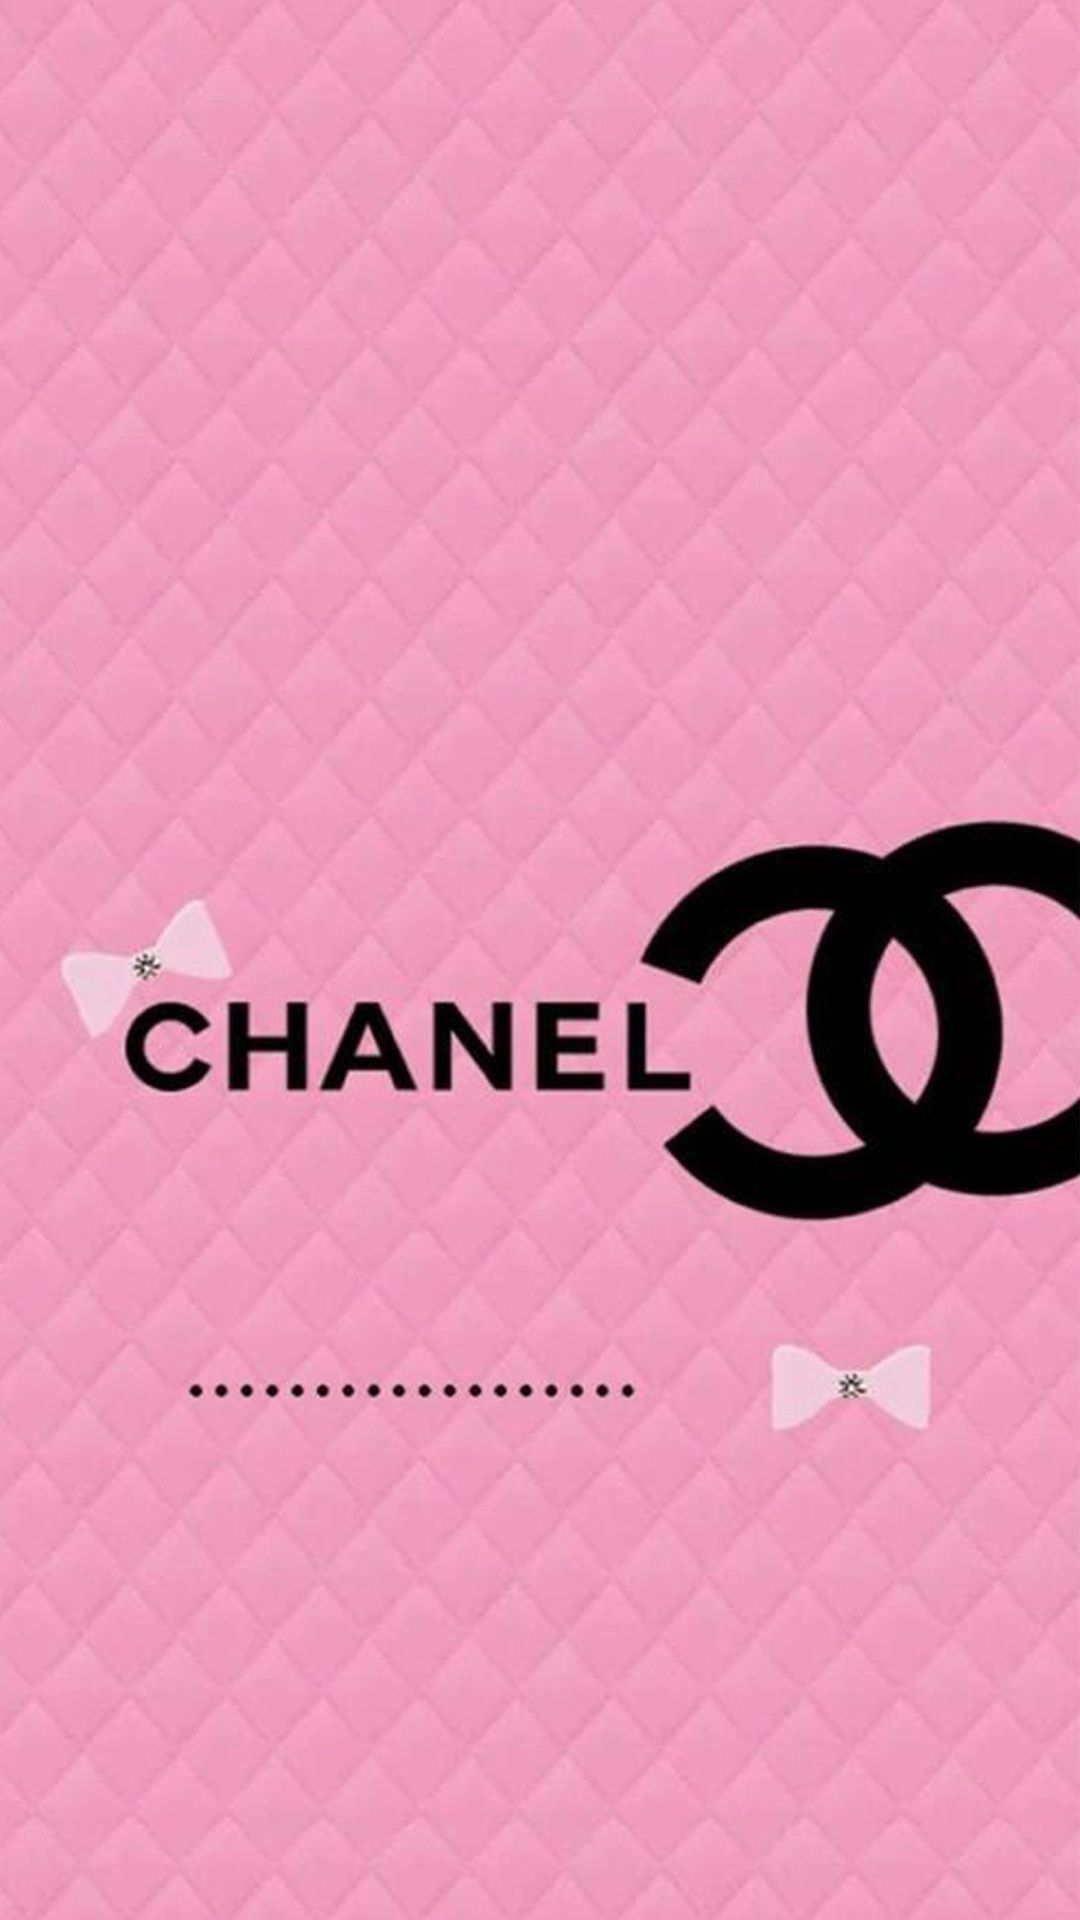 Iphone wallpaper tumblr chanel -  Iphone Ios Wallpaper Tumblr For Ipad Samsung Wallpaper Iossamsungchanel